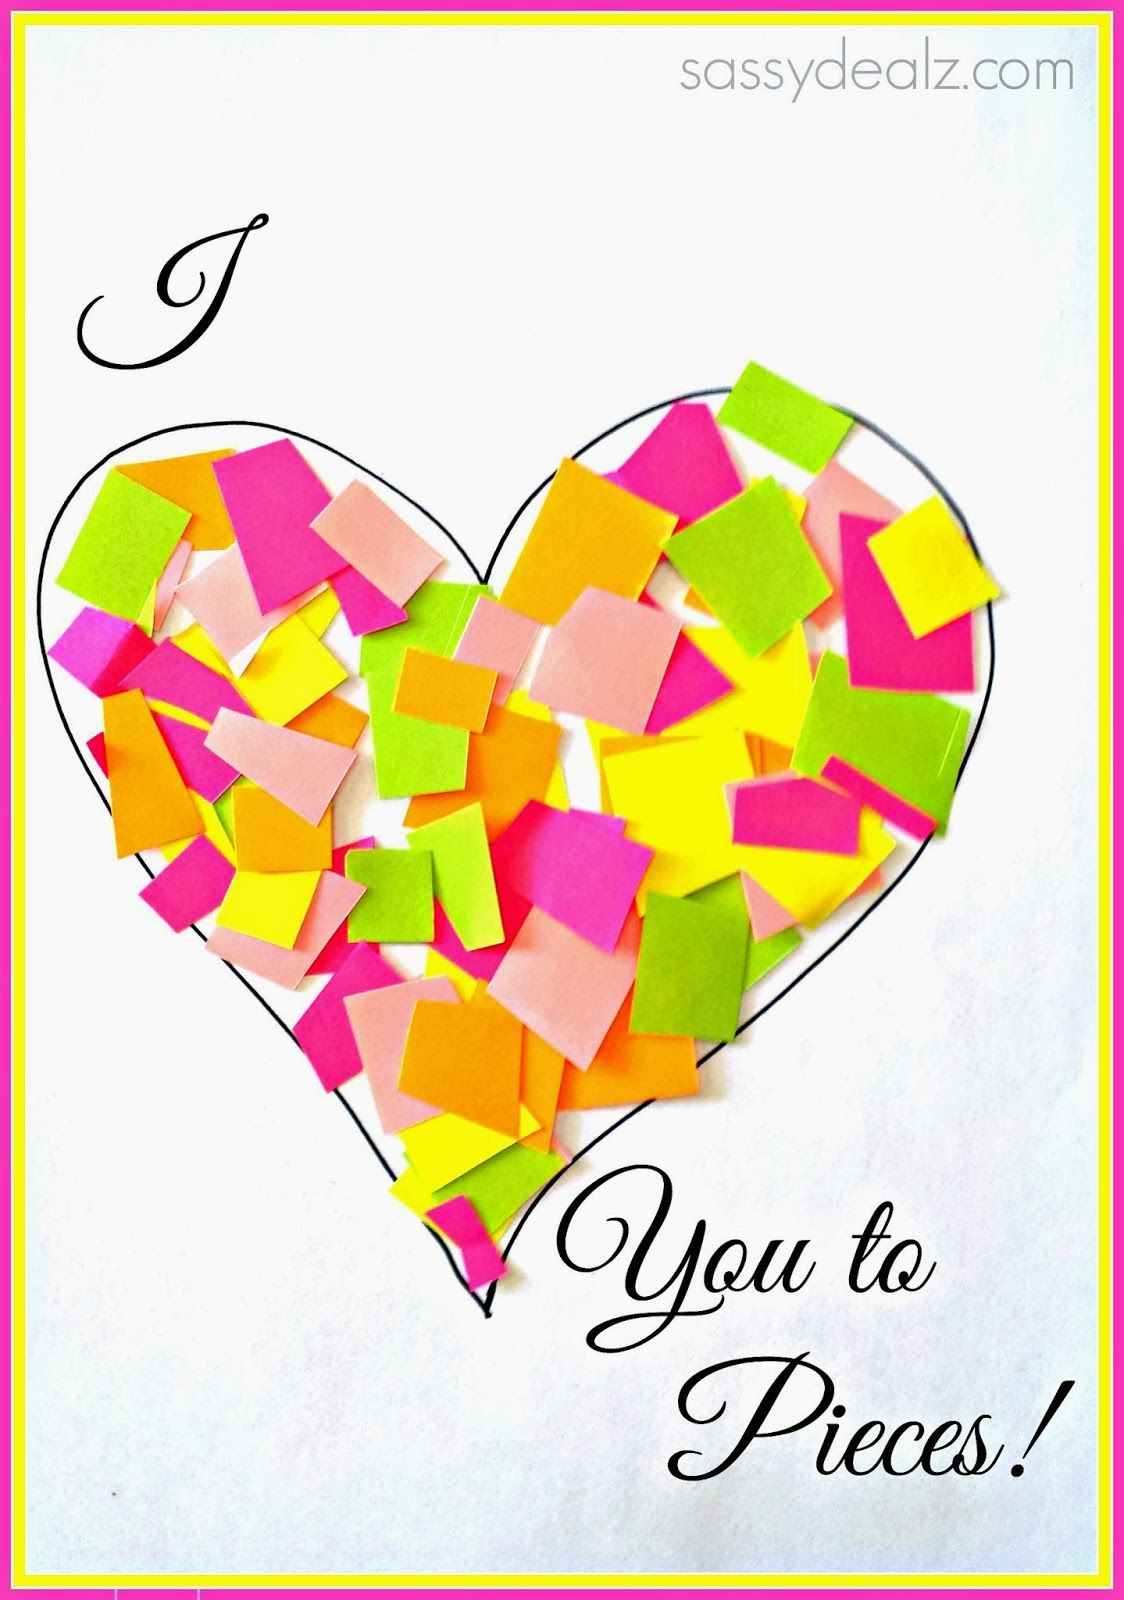 Valentines day art and crafts for preschoolers -  I Love You To Pieces Heart Craft For Kids Valentine Card Idea